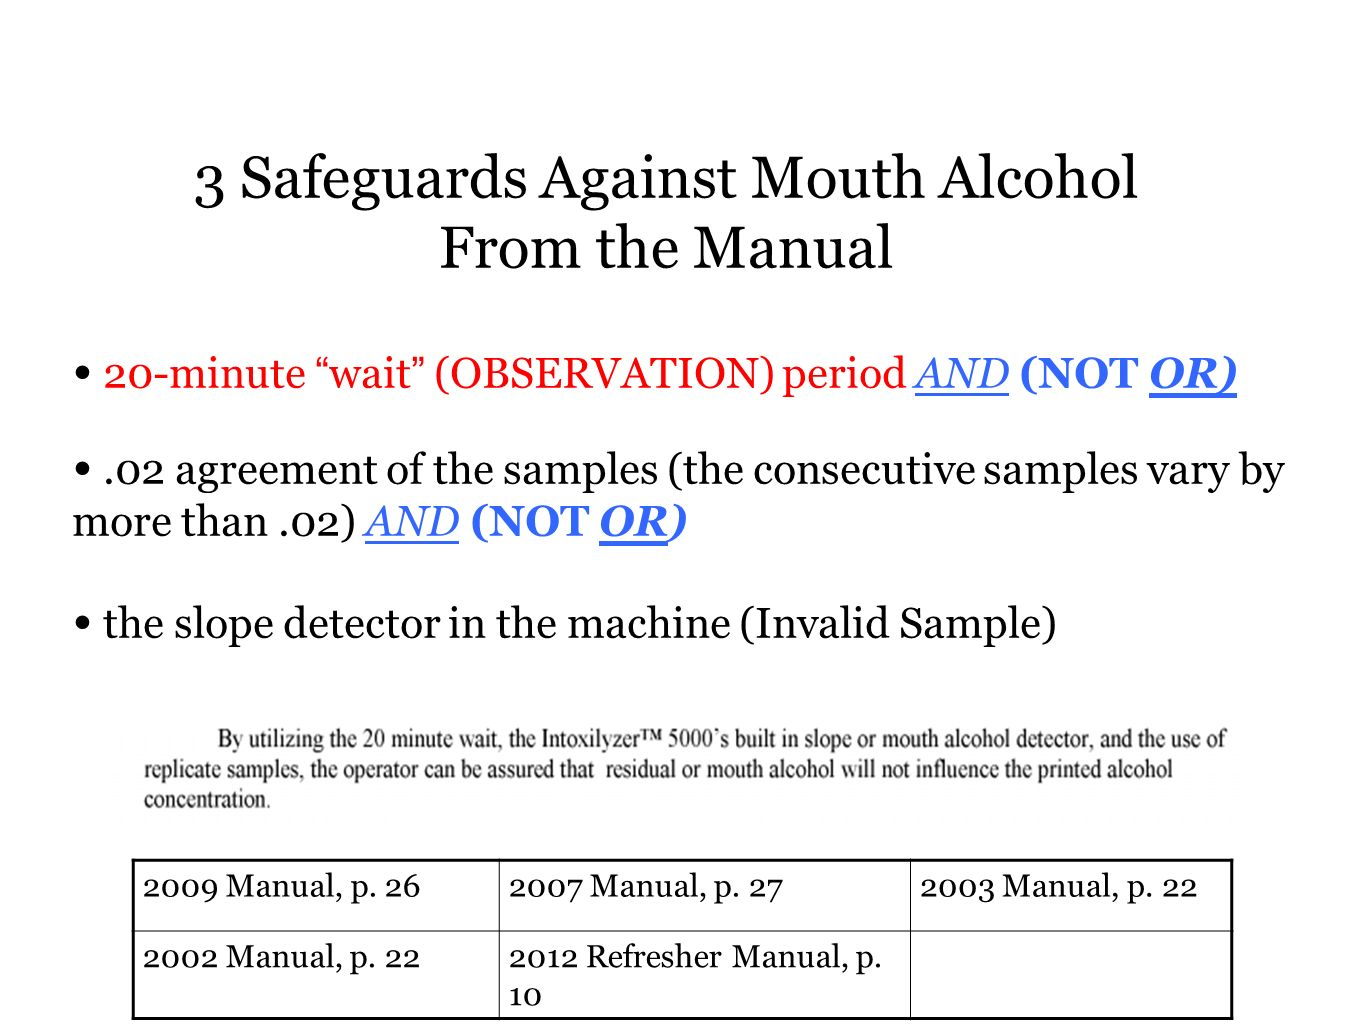 3 Safeguards Against Mouth Alcohol From the Manual